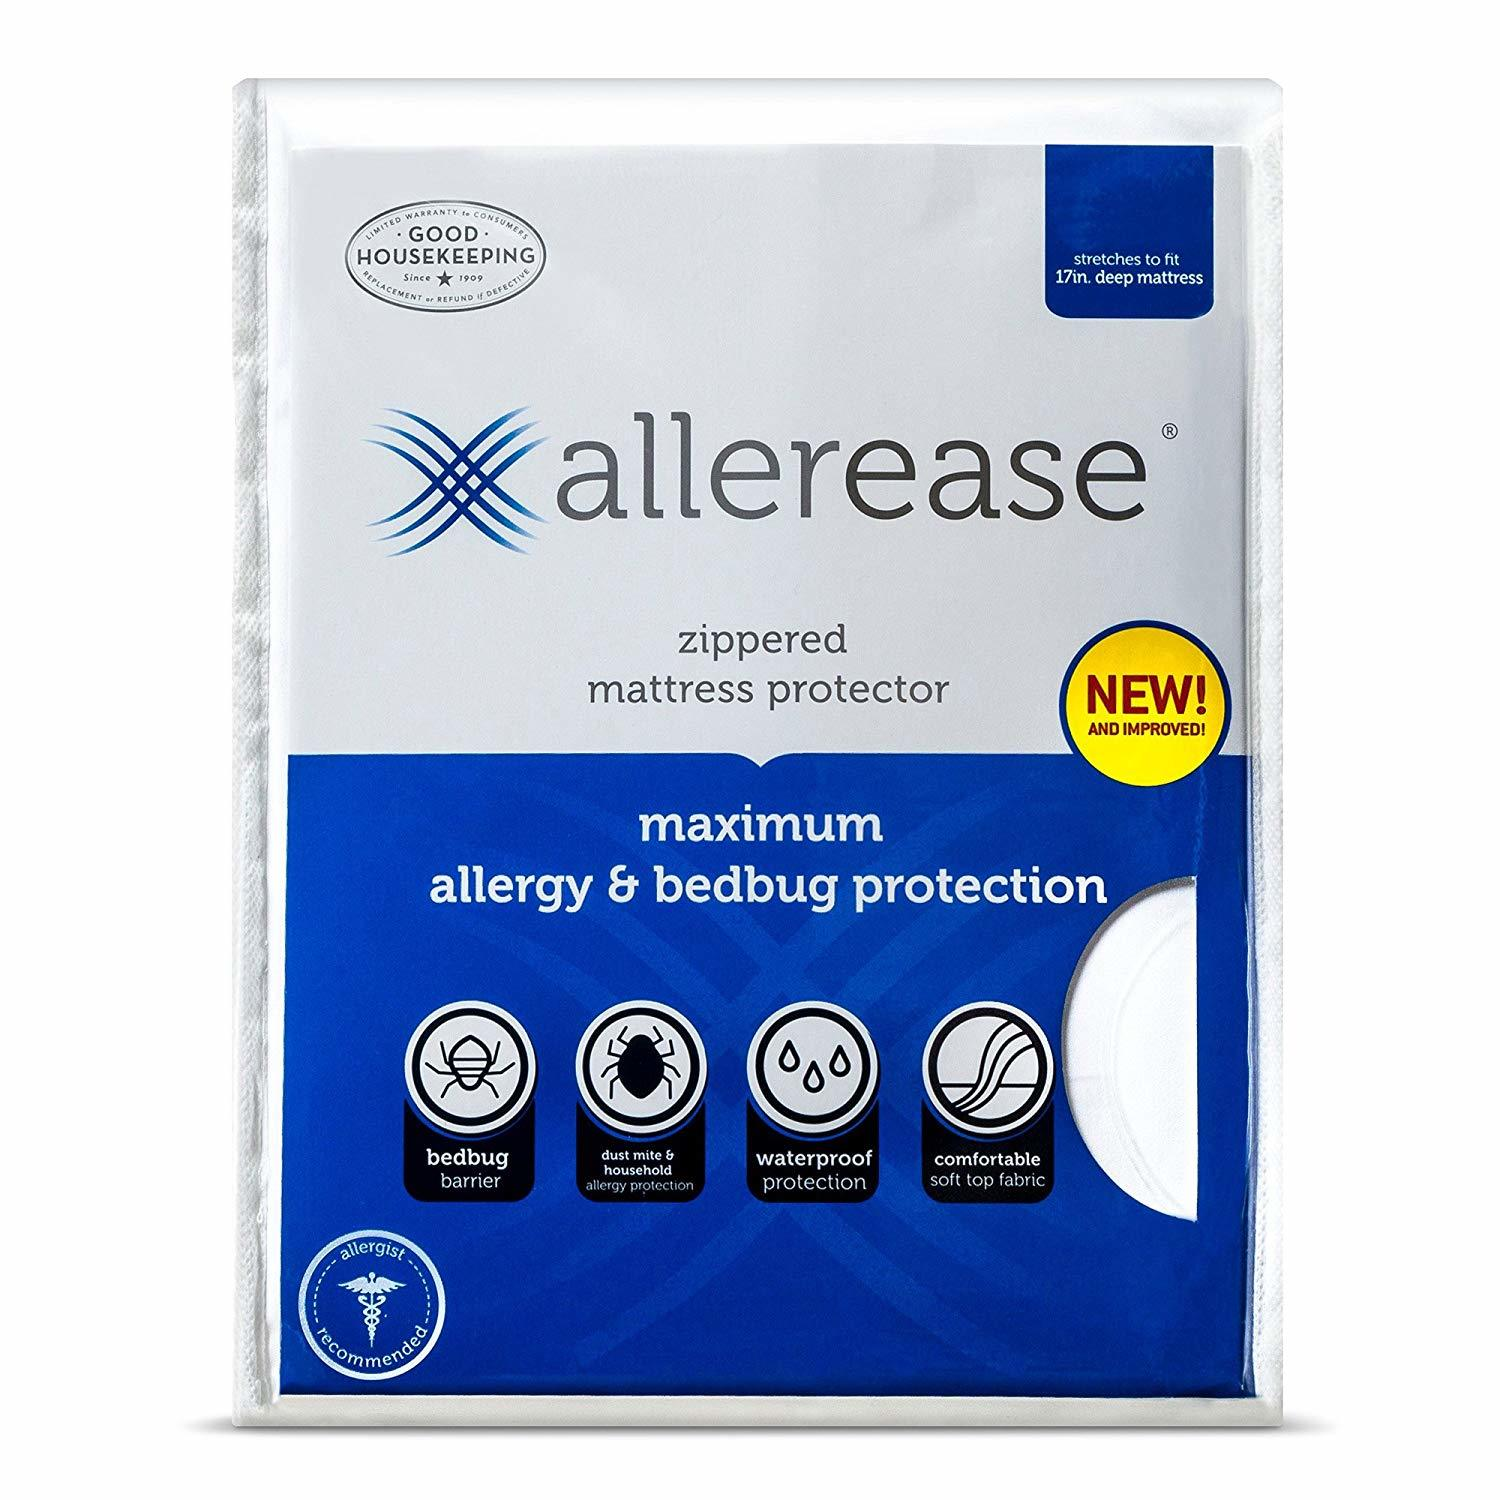 AllerEase Ultimate Protection and Comfort Zippered Mattress Protector